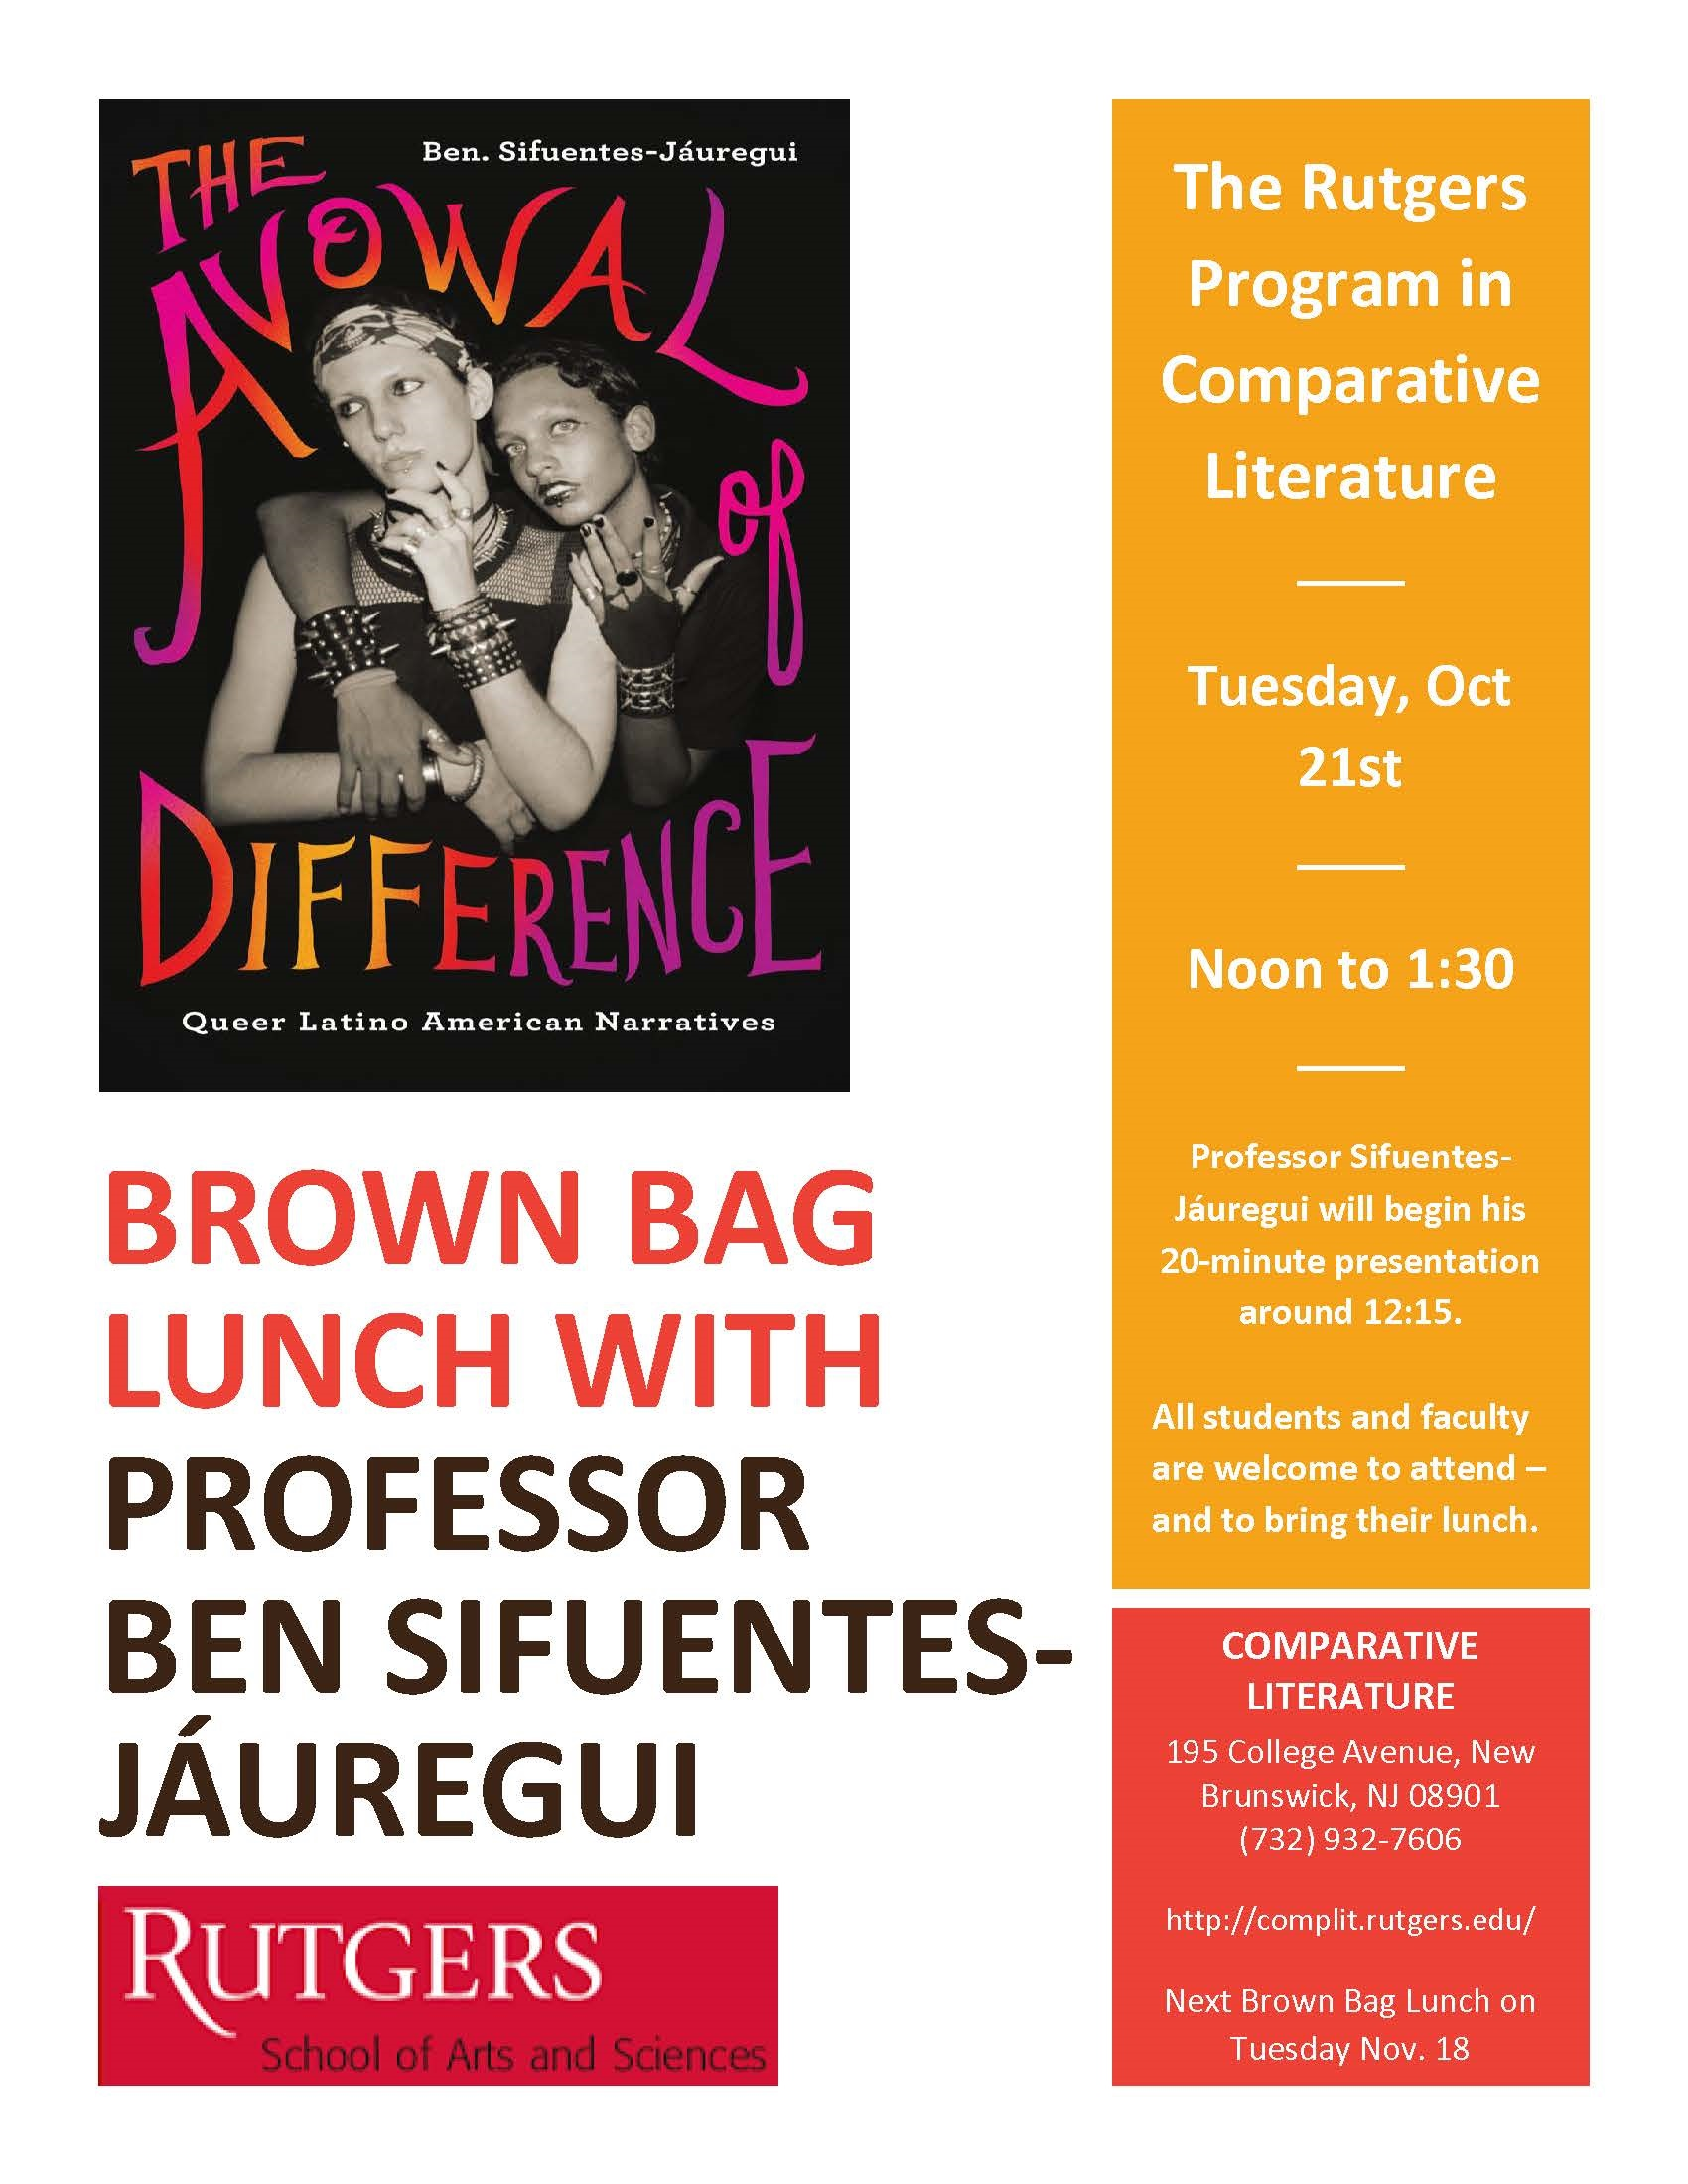 Alidou September 23, 2014 Brown Bag Luncheon